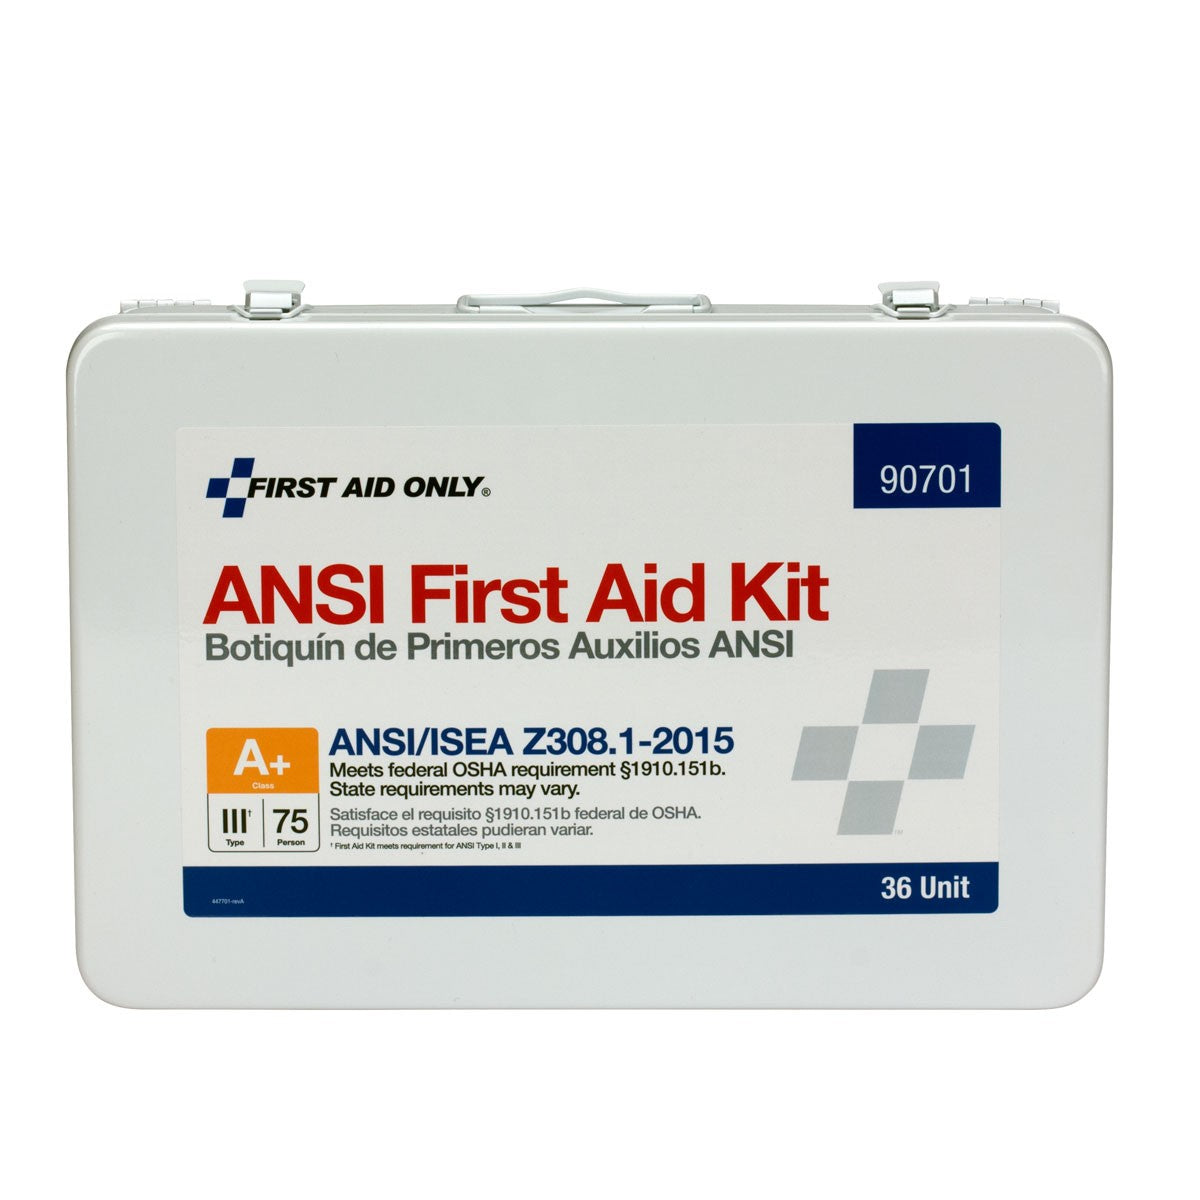 First Aid Only 75 Person 36 Unit First Aid Kit, ANSI A+ Compliant, Metal Weatherproof Case, Type III